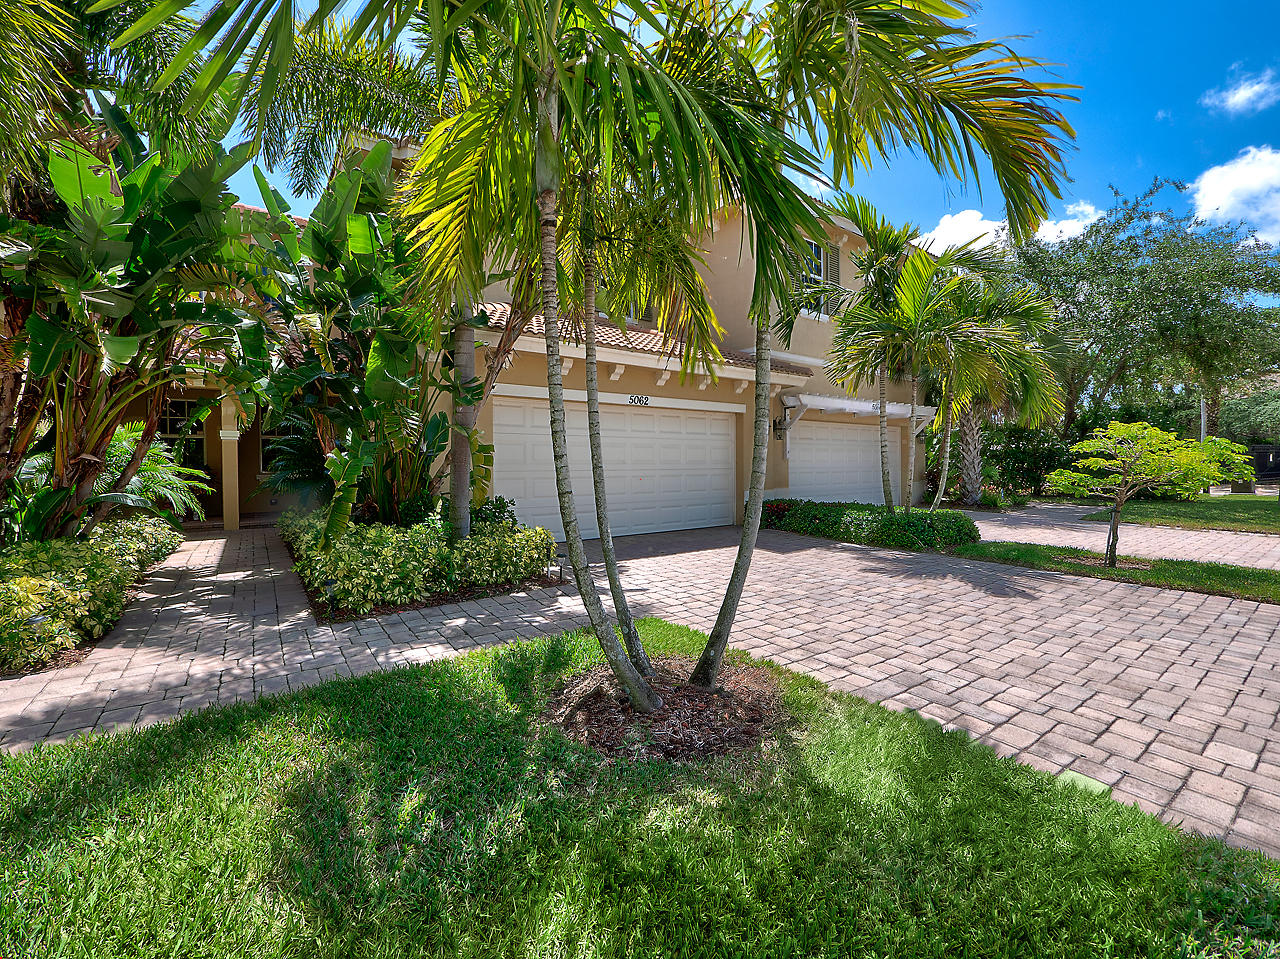 Paloma Palm Beach Gardens Homes & Real Estate For Sale | Jeff ...